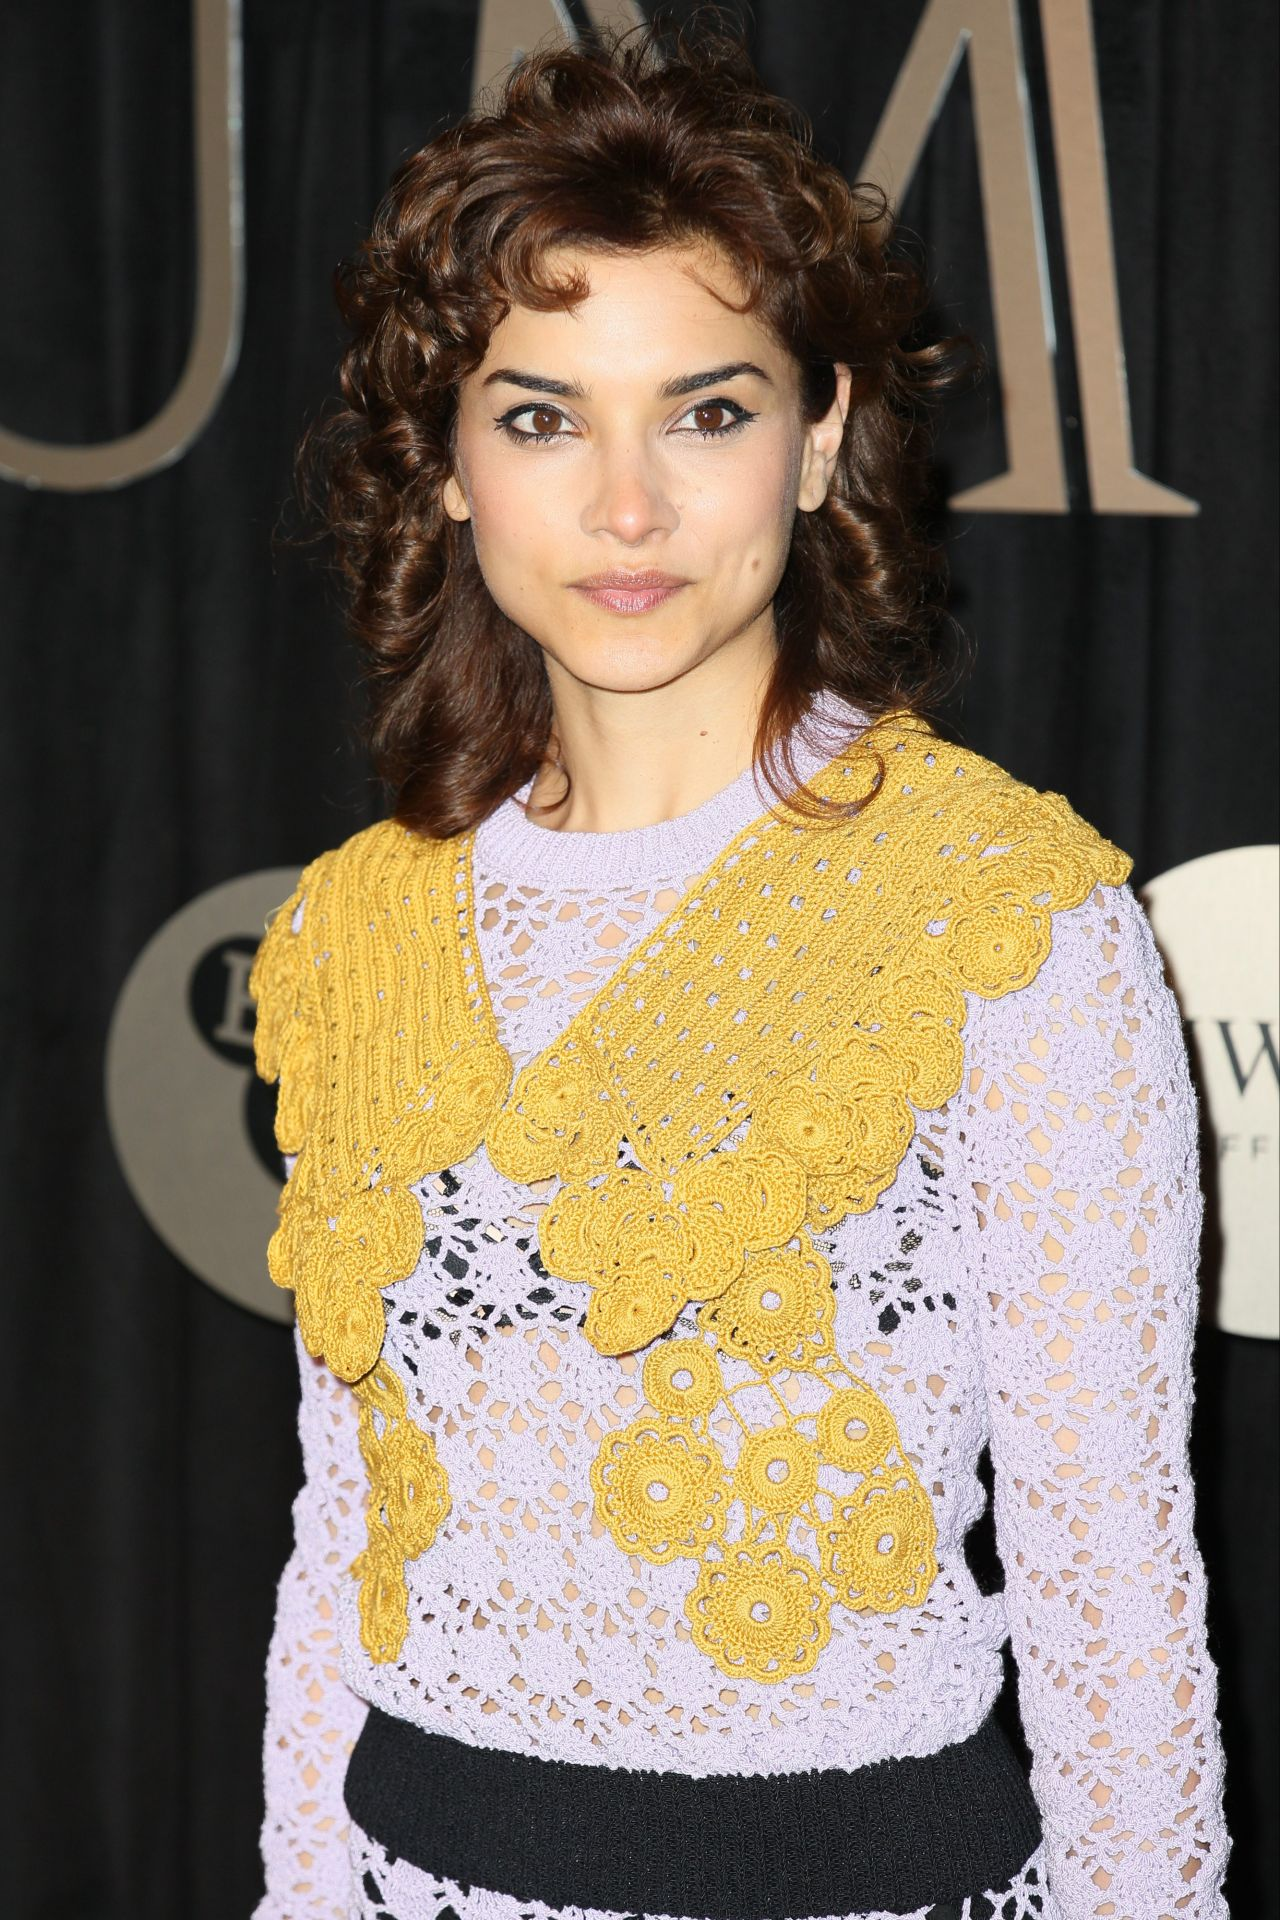 Amber Rose Revah Bfi Luminous Fundraiser In London 10 03